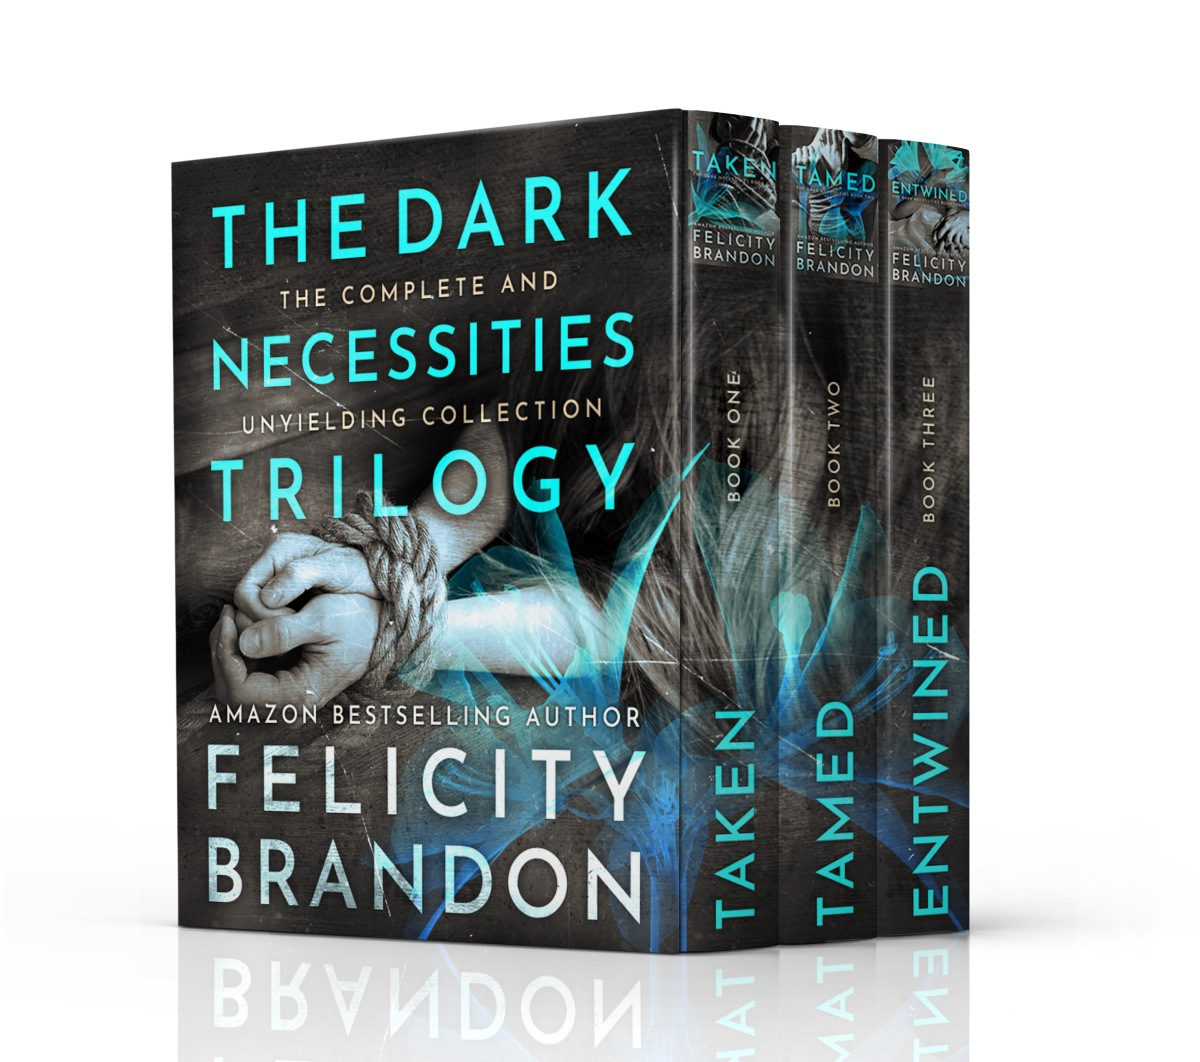 The Dark Necessities Set for ONLY $2.99!